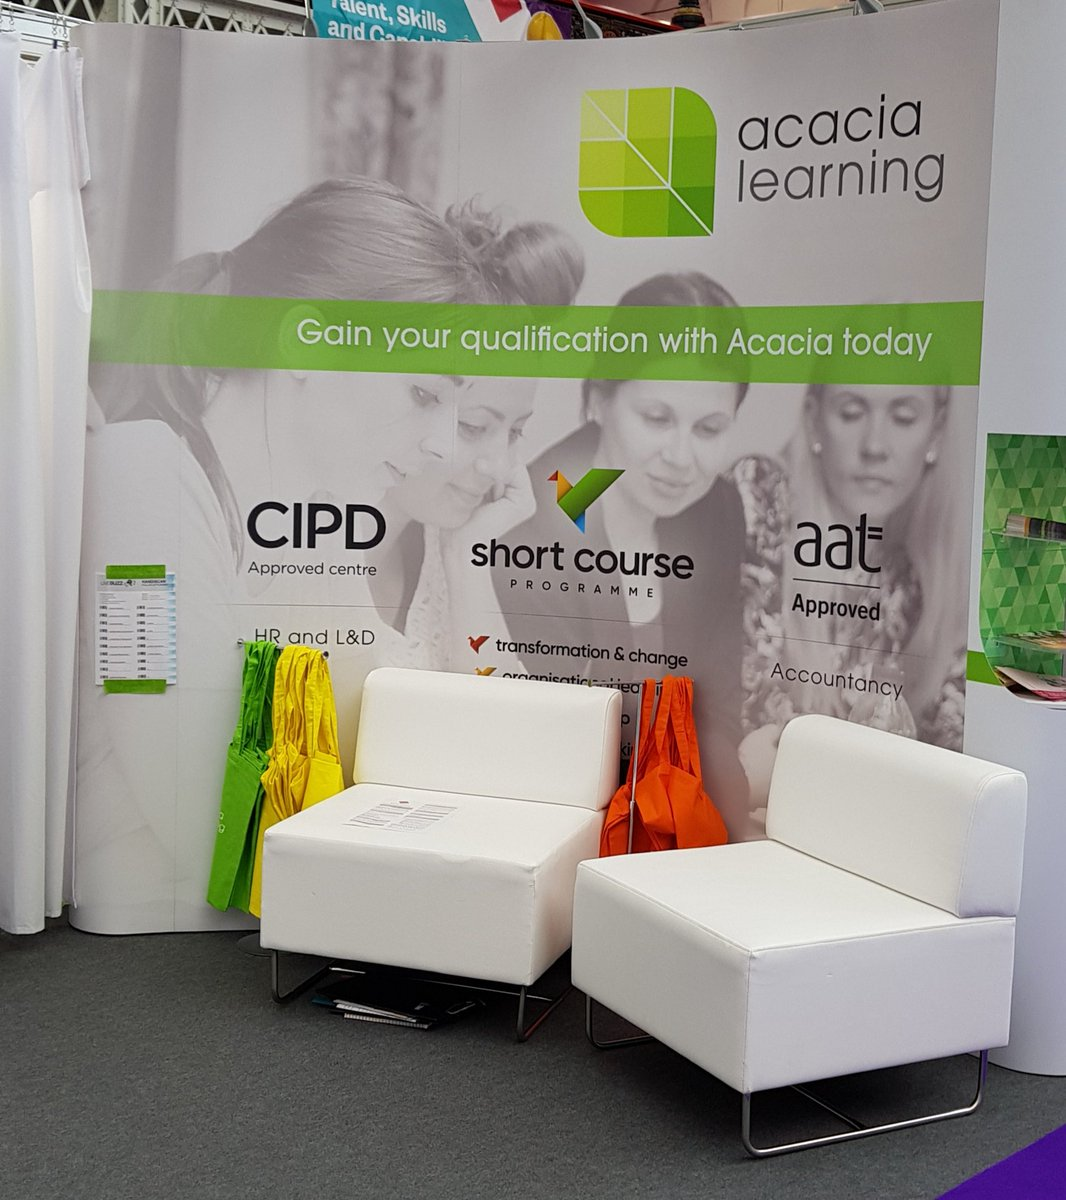 Not long and the doors open on day 2 #festivalofwork #CIPD how can we help you? Come and chat to us on stand E31 @Acacia_Learning